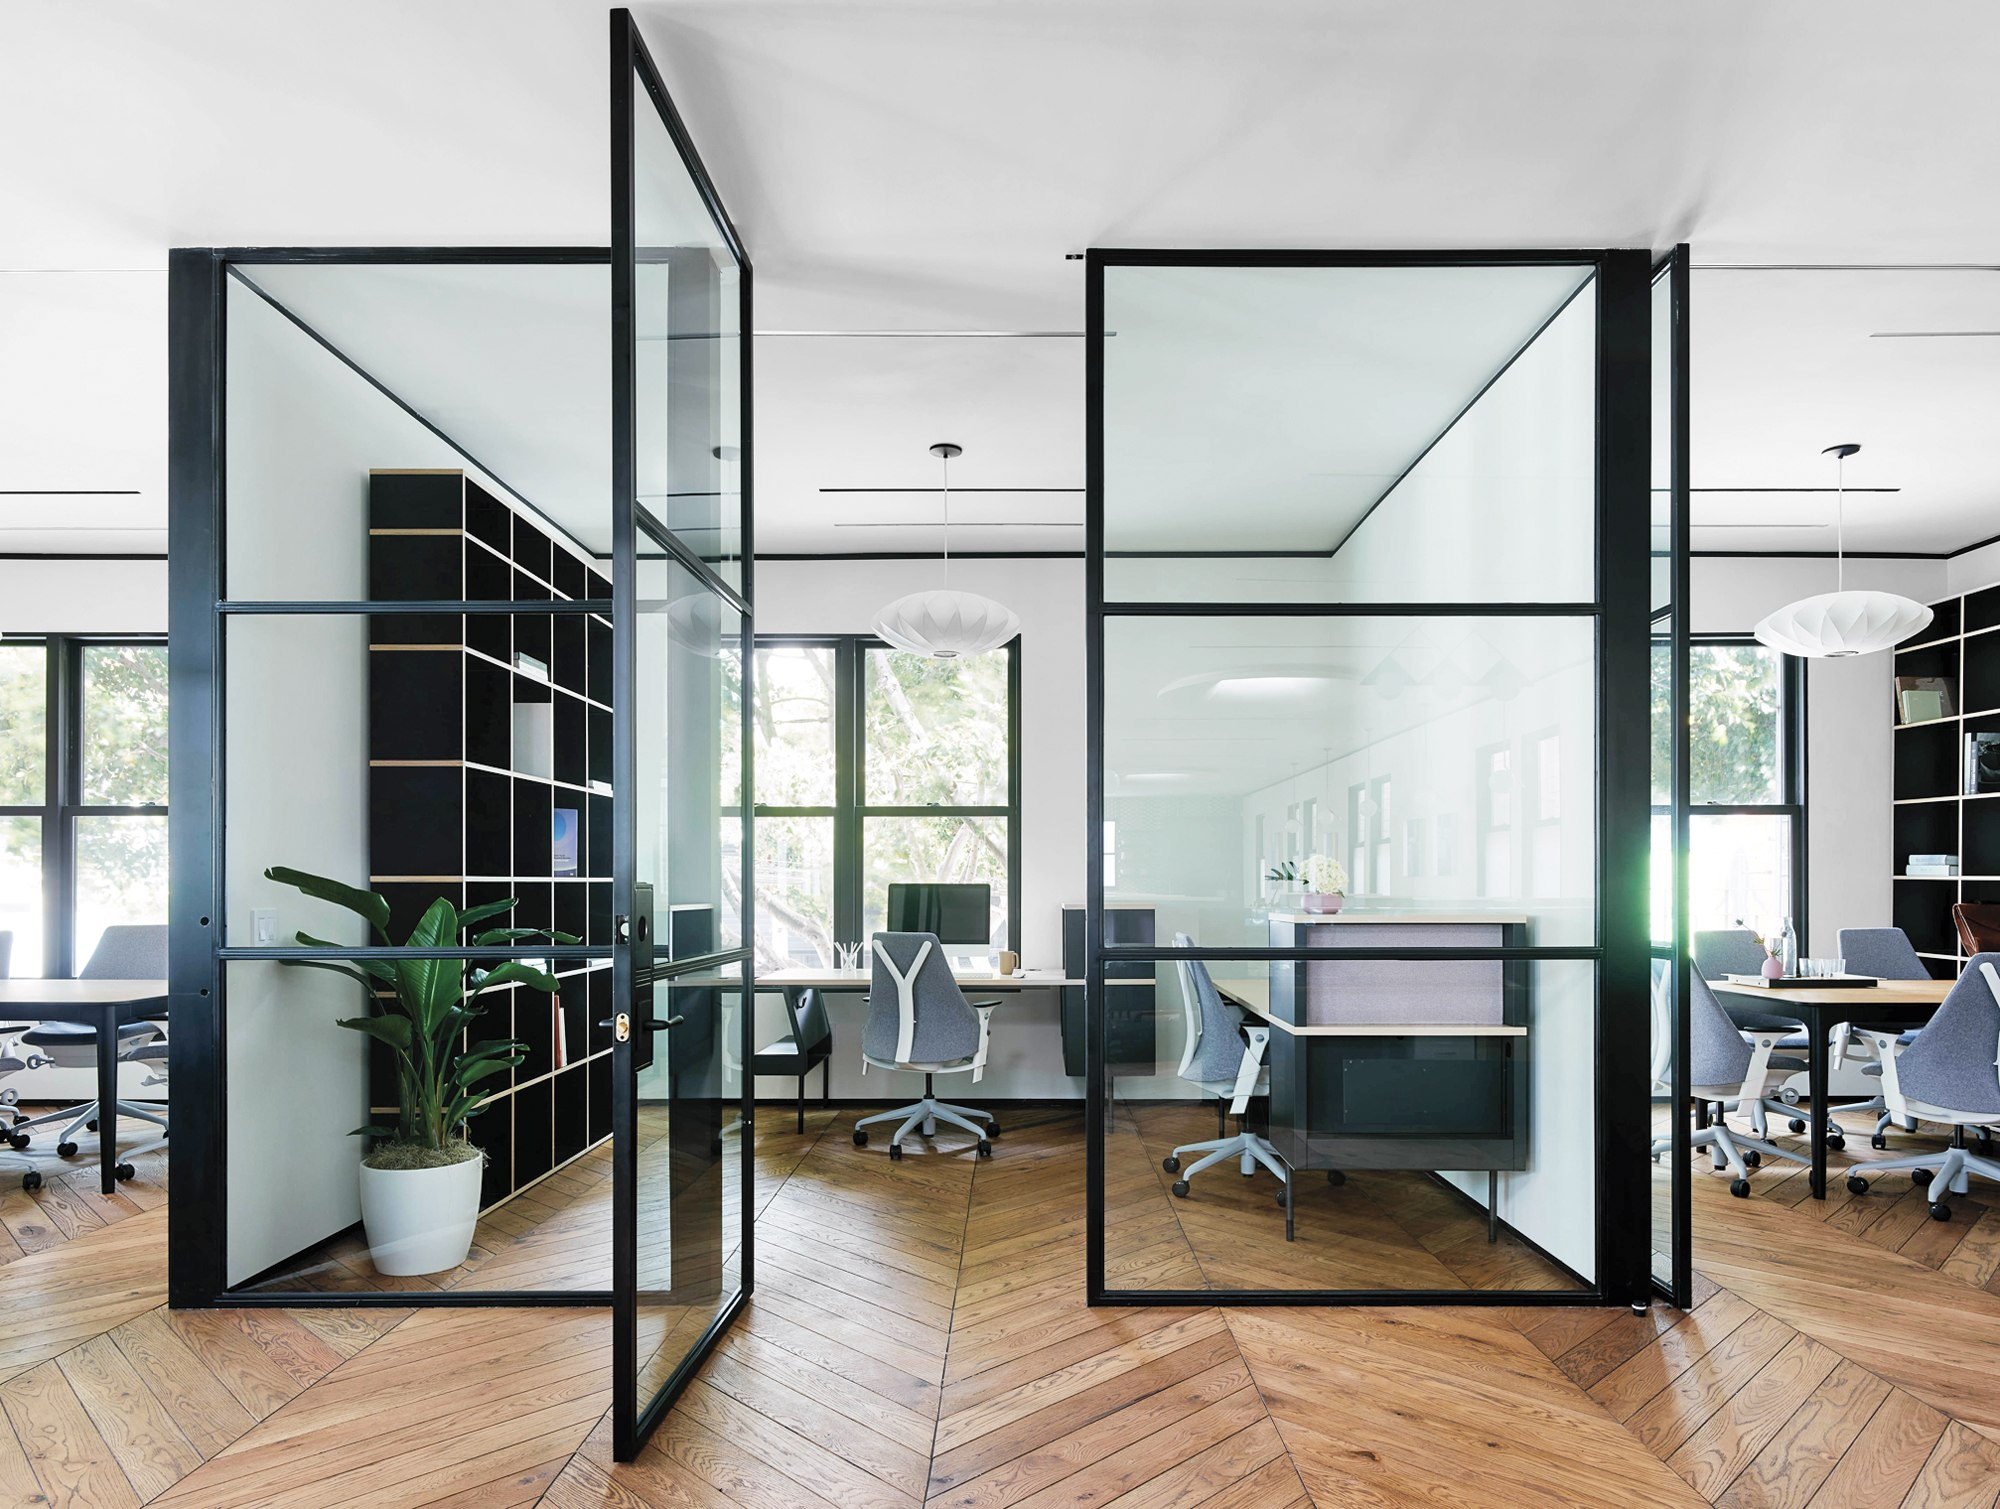 Yves b har masterminds coworking with san francisco 39 s canopy for Office working area design